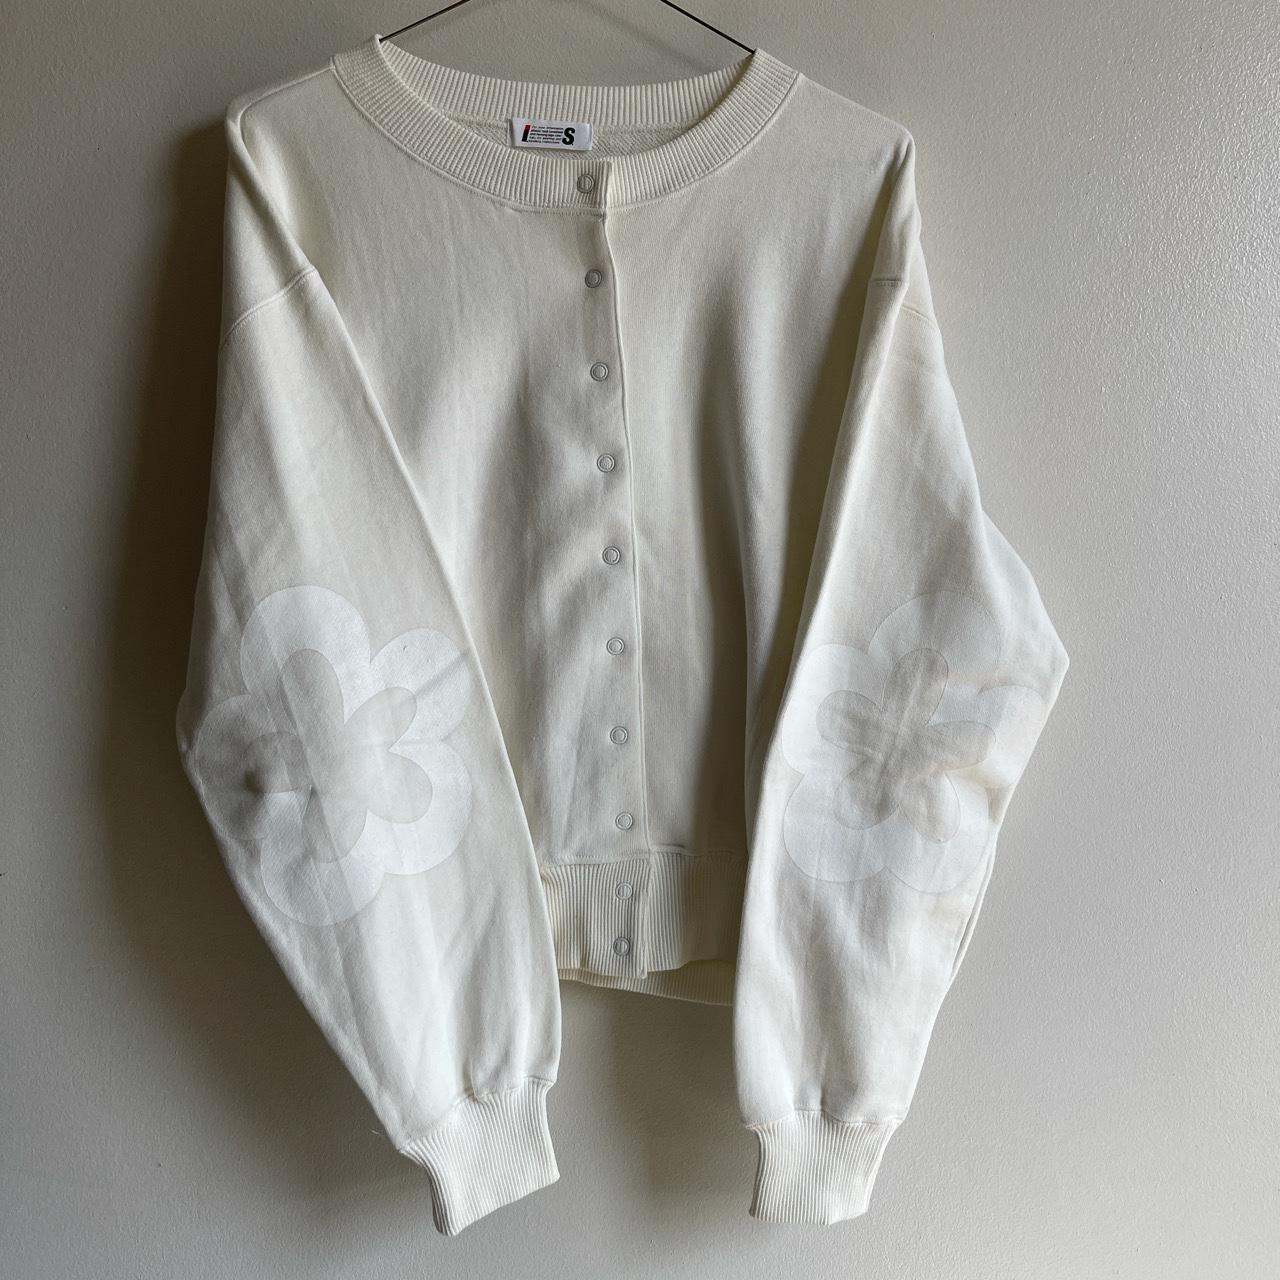 Product Image 1 - Issey Miyake White Floral Sweatsuit